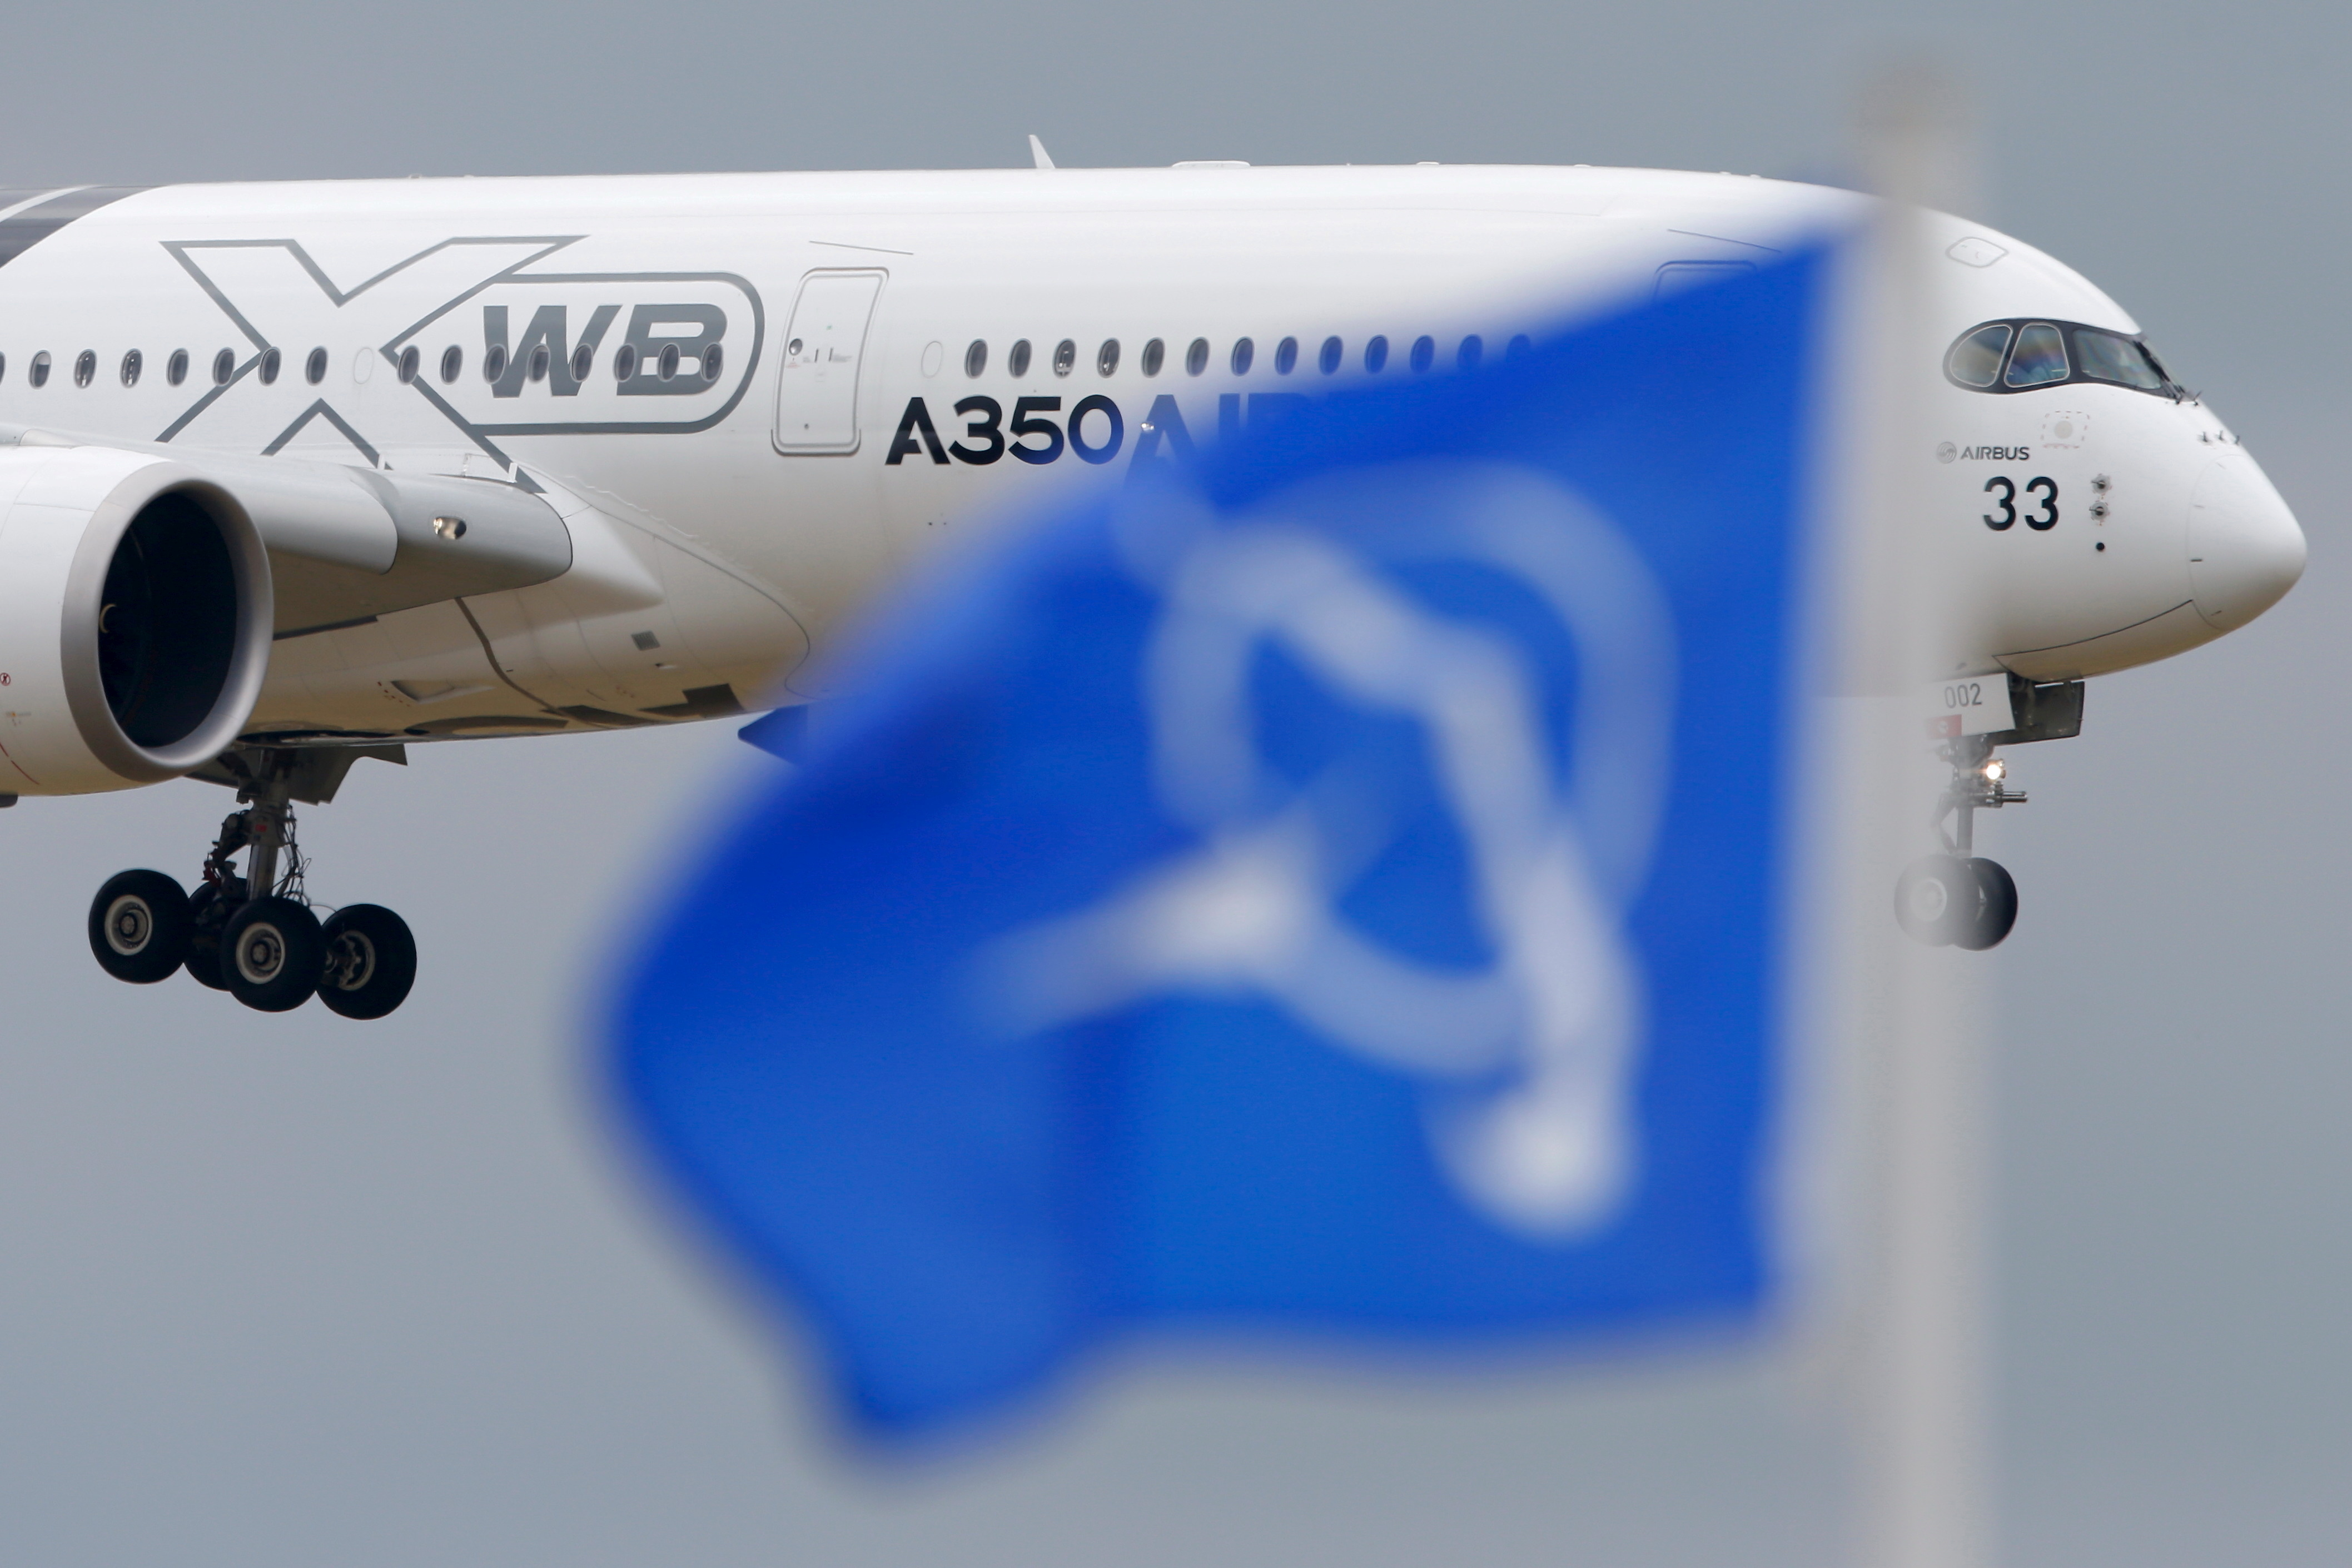 An Airbus A350 flies over a Boeing flag while landing after a flying display during the 51st Paris Air Show at Le Bourget airport near Paris, June 18, 2015.